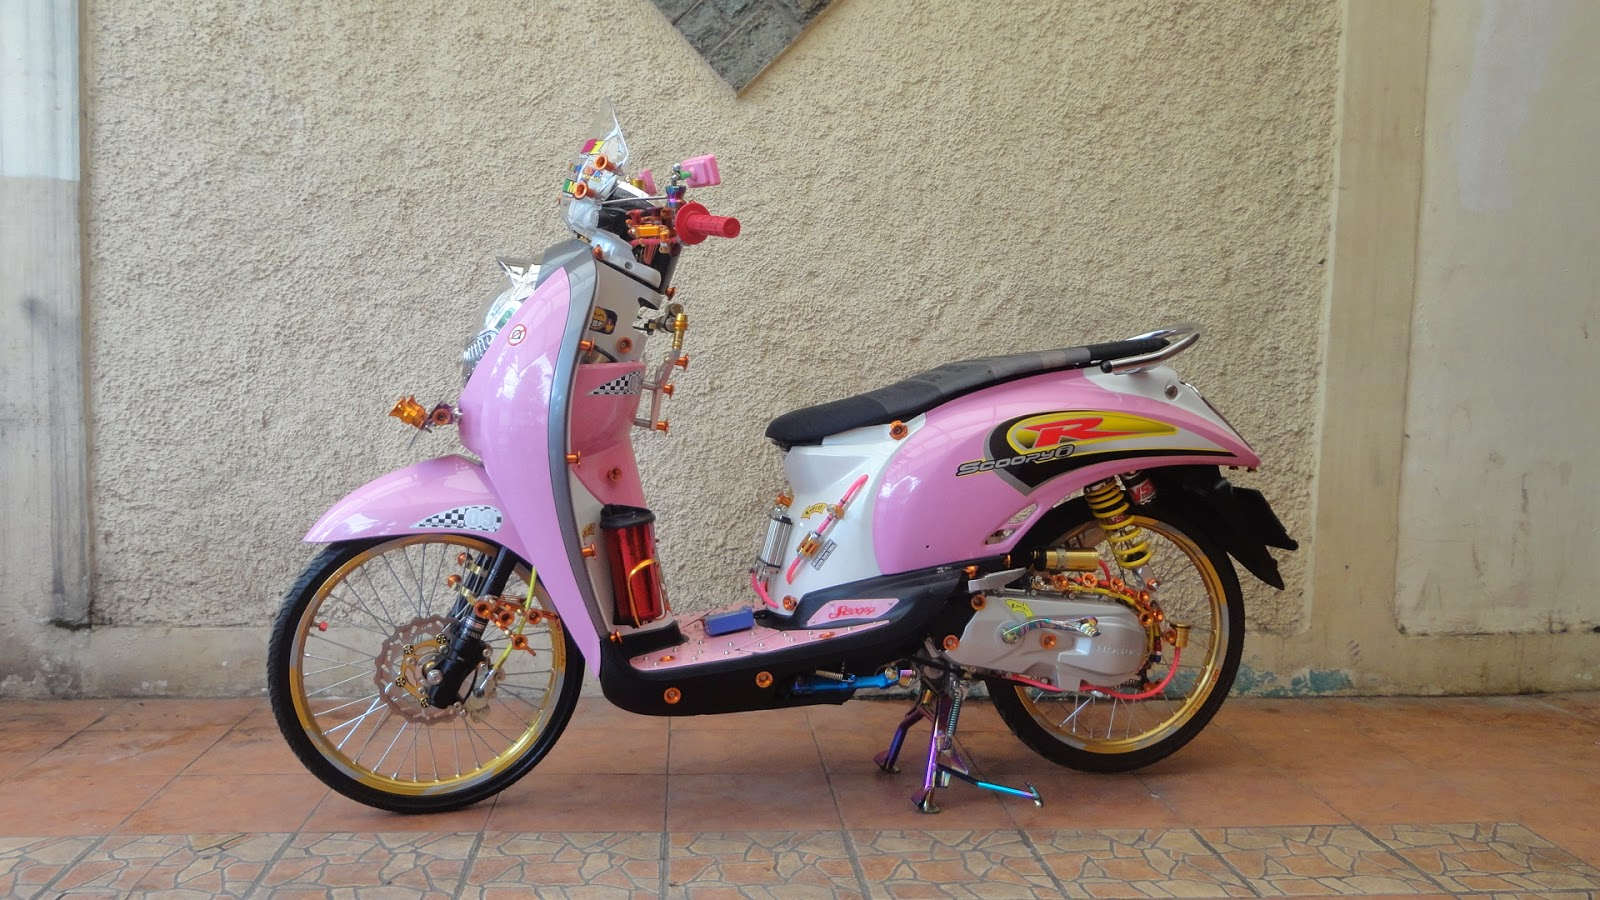 Modifikasi Motor Matic Honda Scoopy Pink Retro